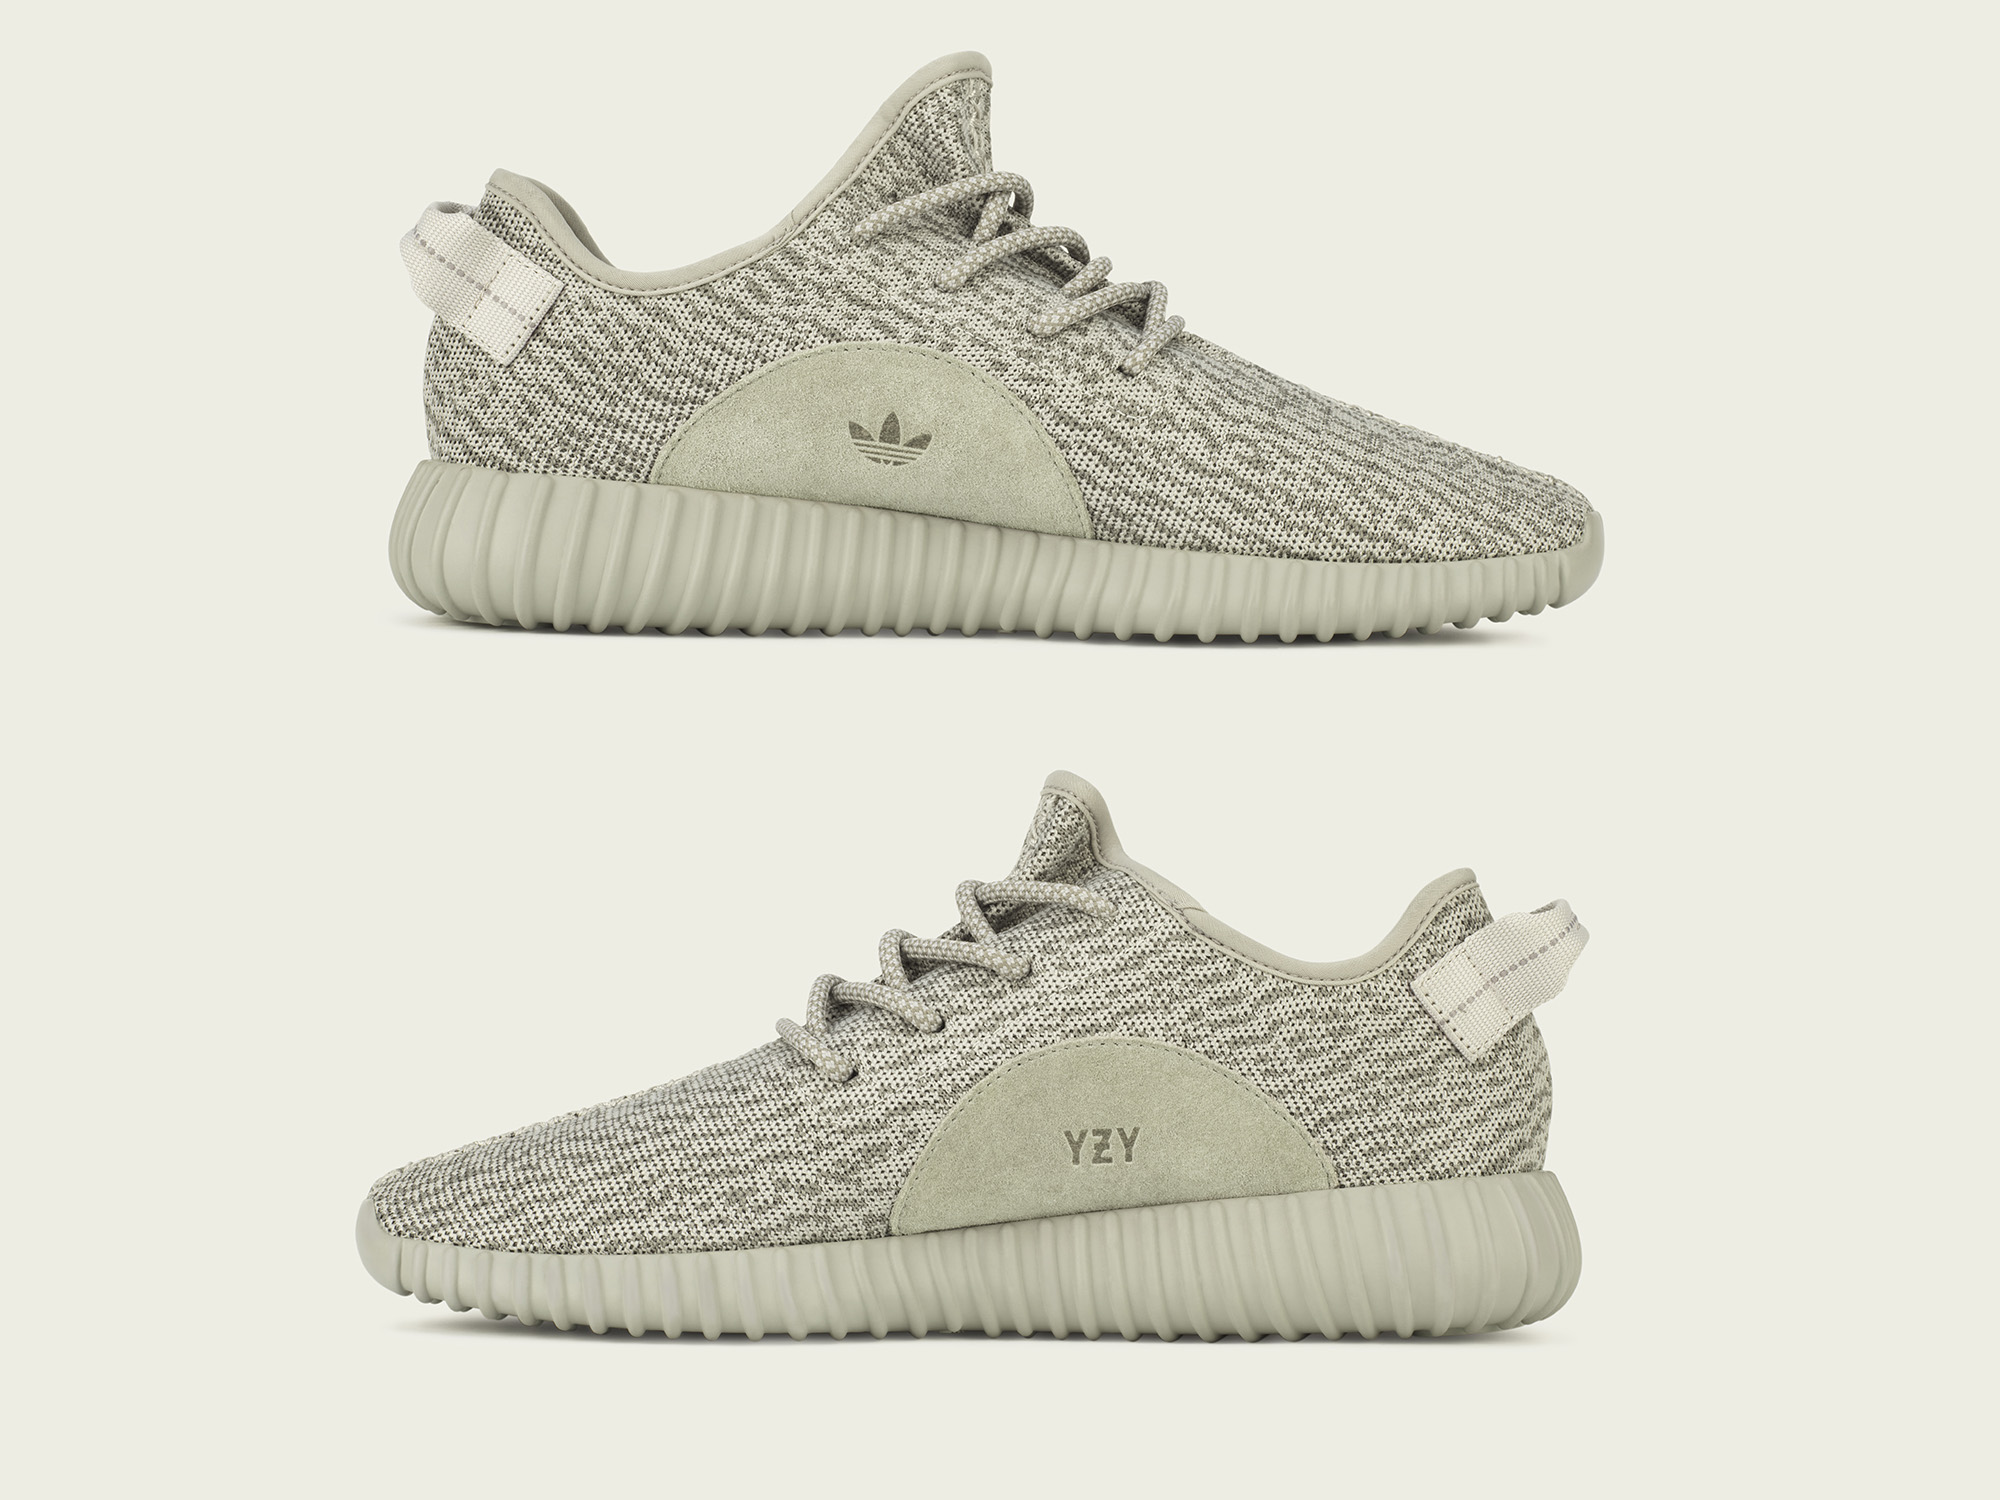 more adidas YEEZY Releases. yzy-boost-350-moonrock